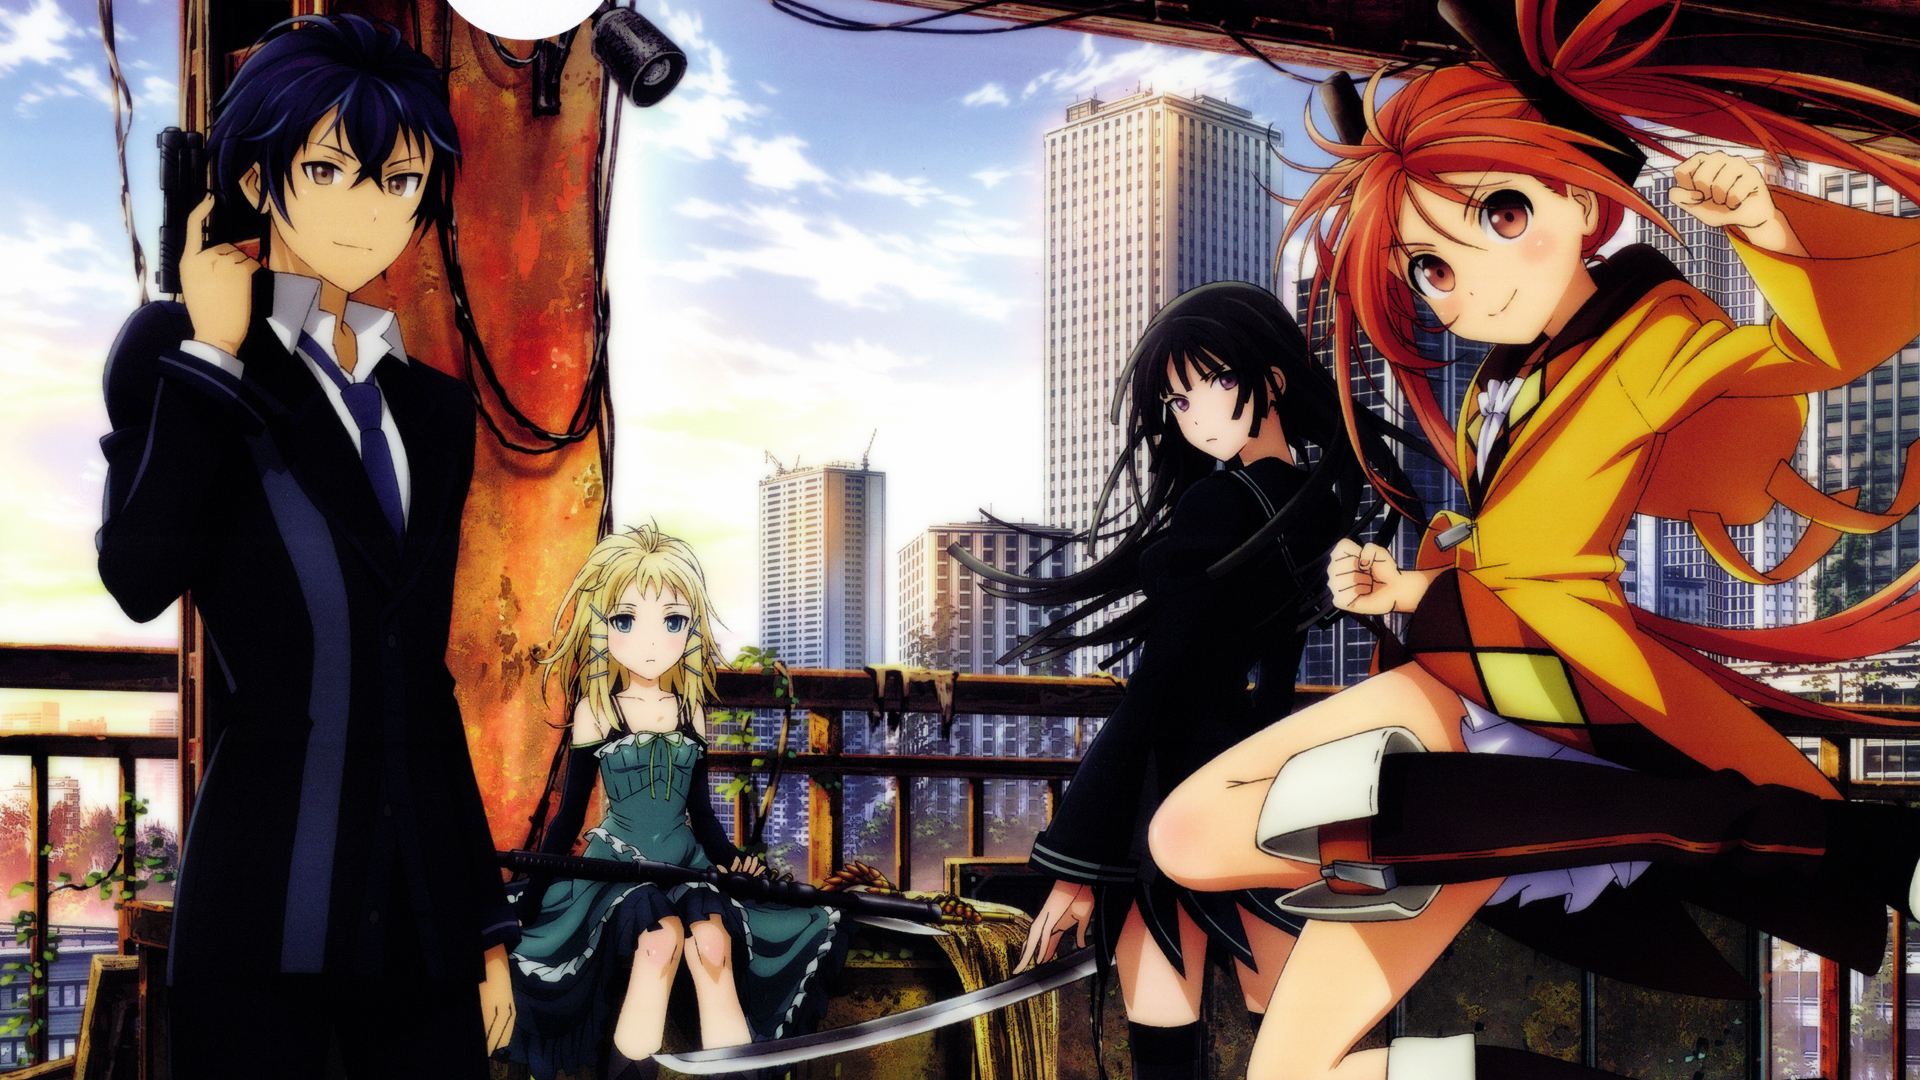 black bullet anime 11 wallpaper hd